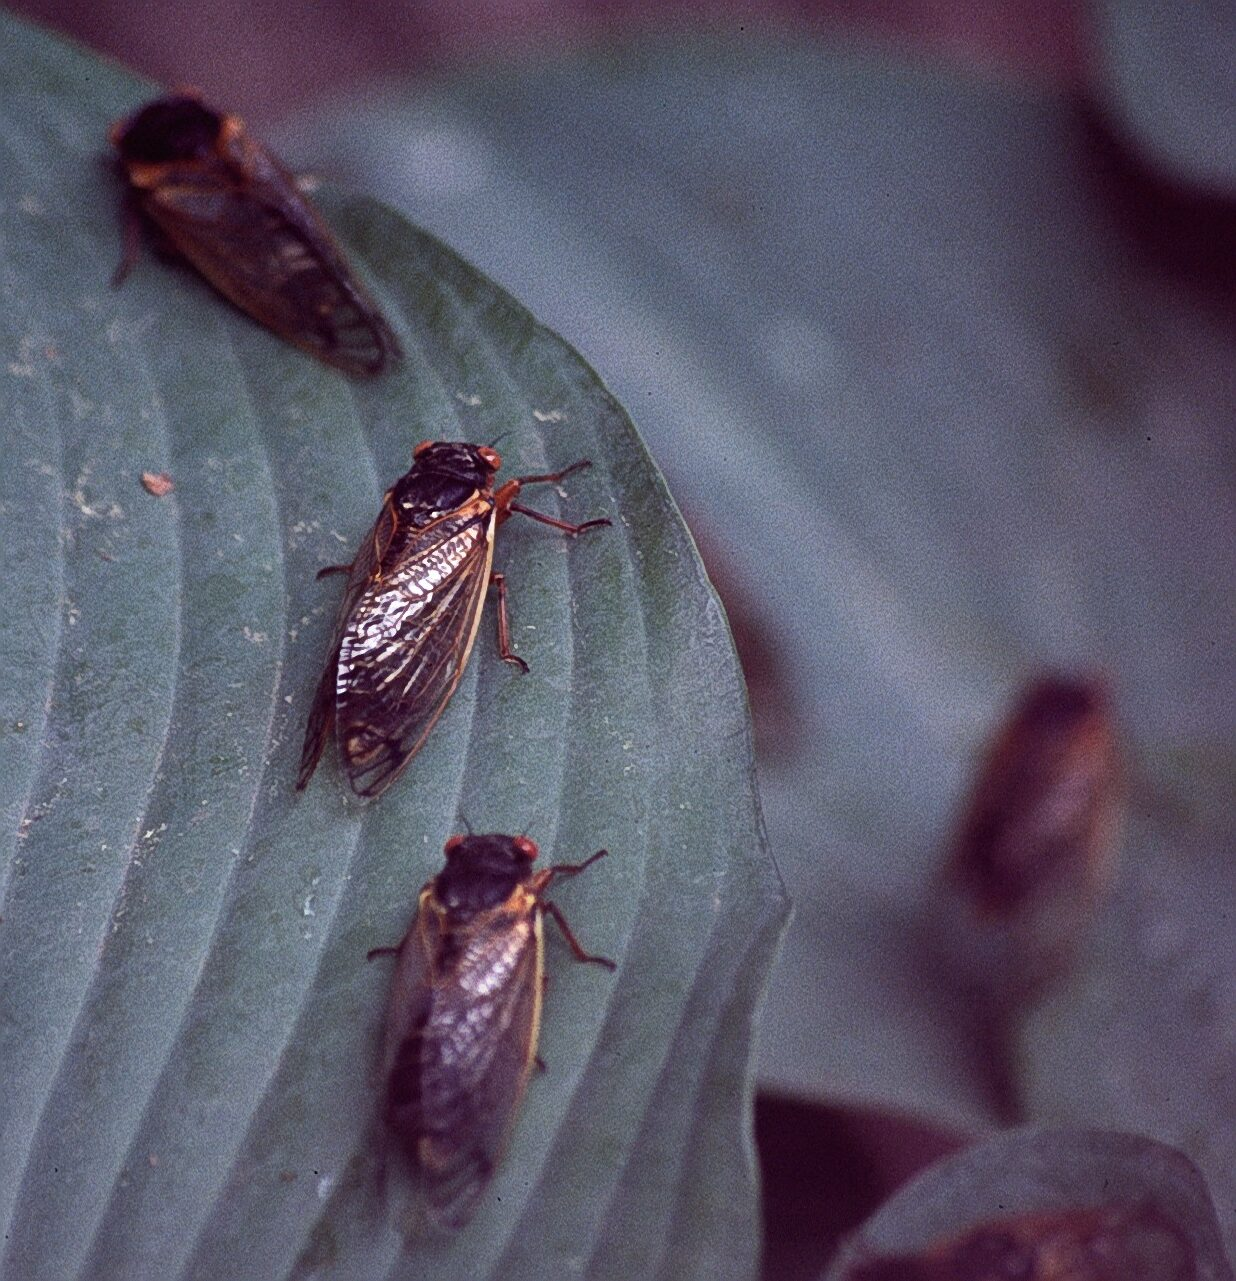 Cicada adults on hostas, just hangin' out